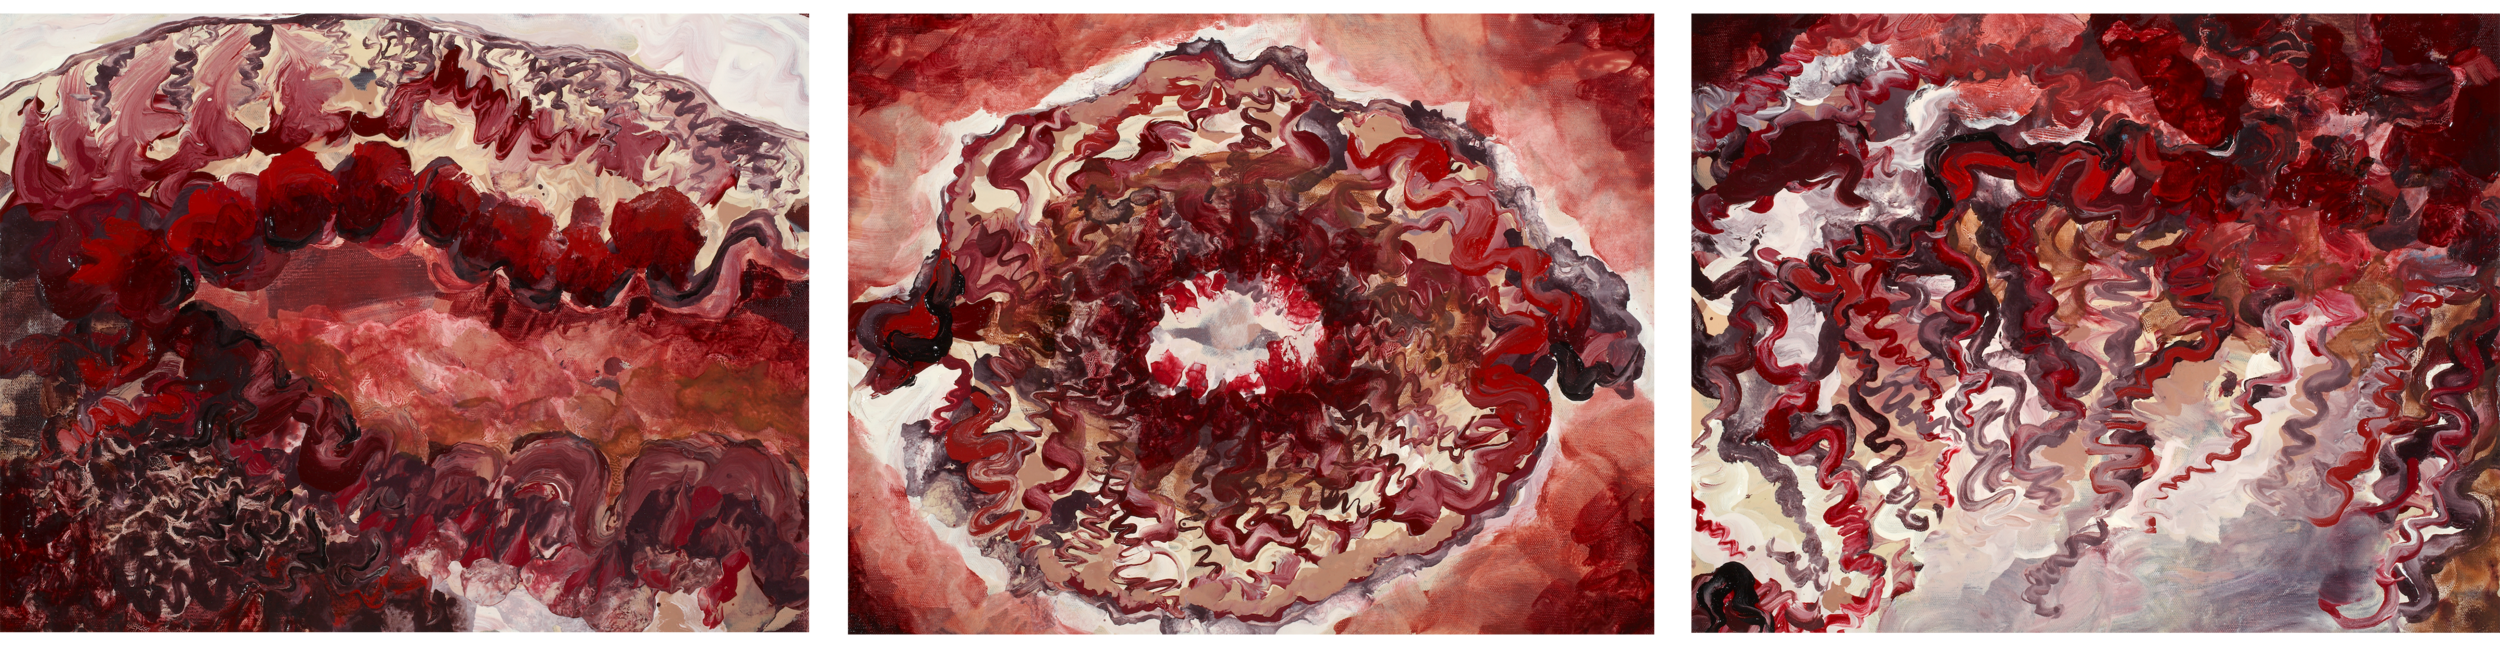 Lynn Parotti's 'The Blastocyst's Ball: A Journey Through the Drug Induced stages of IVF (IN VITRO FERTILISATION) Featuring Ovitrelle's Luteal Lune, Crinone's Crave, & Follistimitus Irreconcilibus' (2008), oil on canvas, 13 x 17 (3). Part of the National Collection.